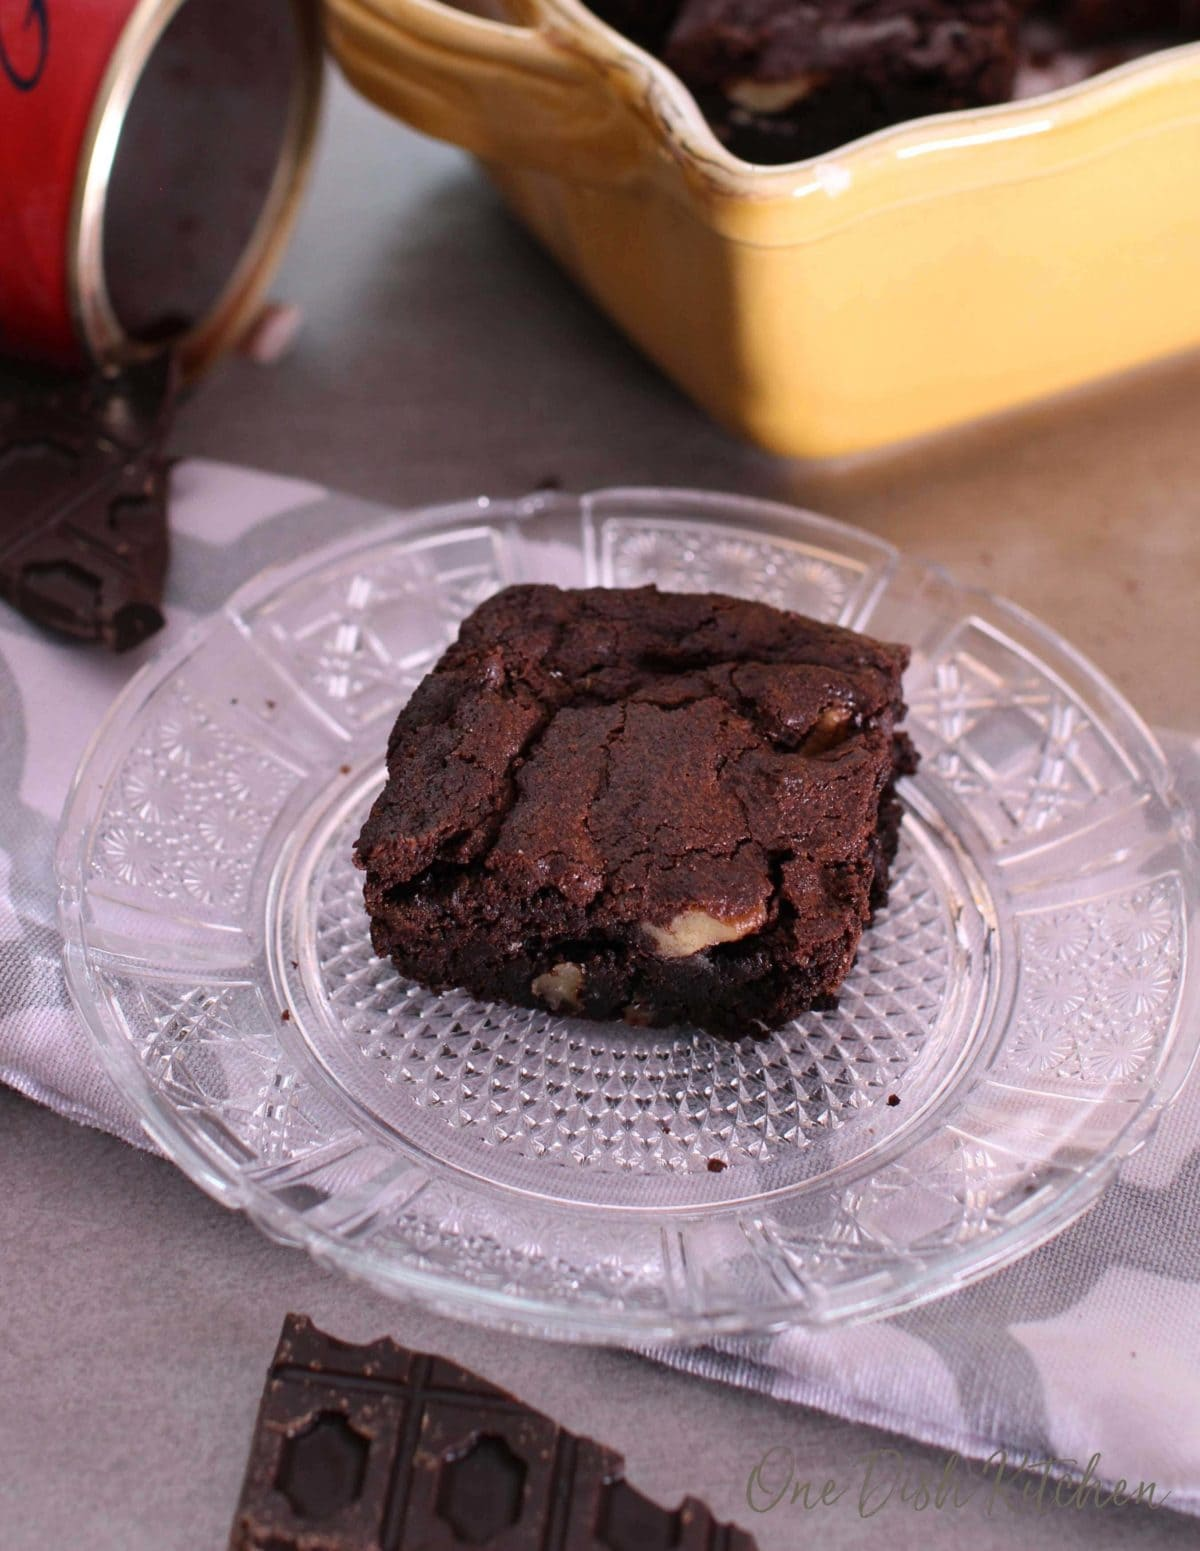 One brownie on a small plate.